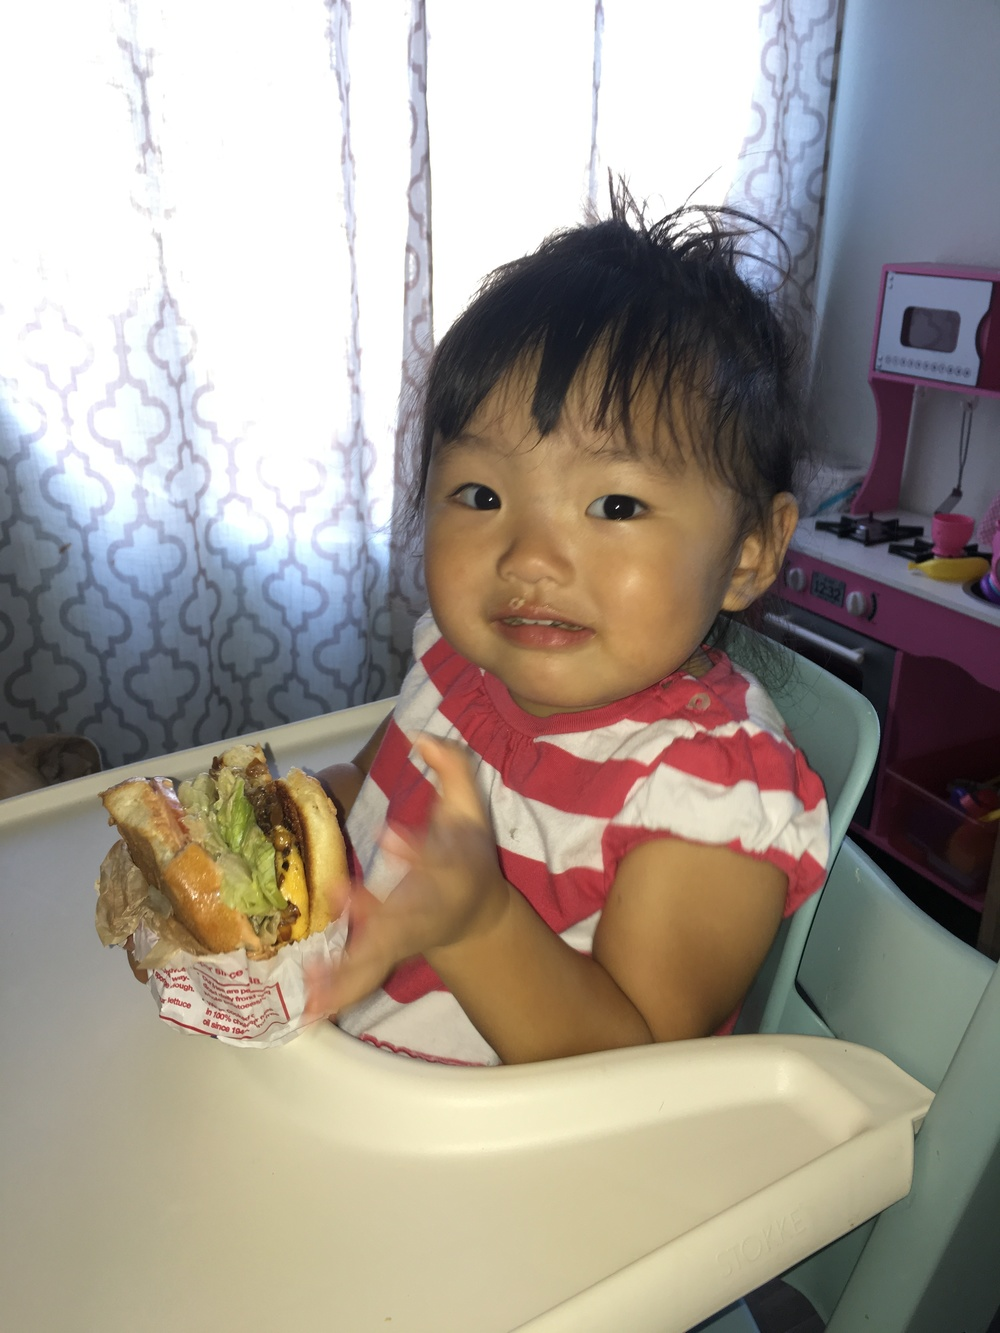 """And me!"" Eating an entire In-n-Out cheeseburger by herself..."